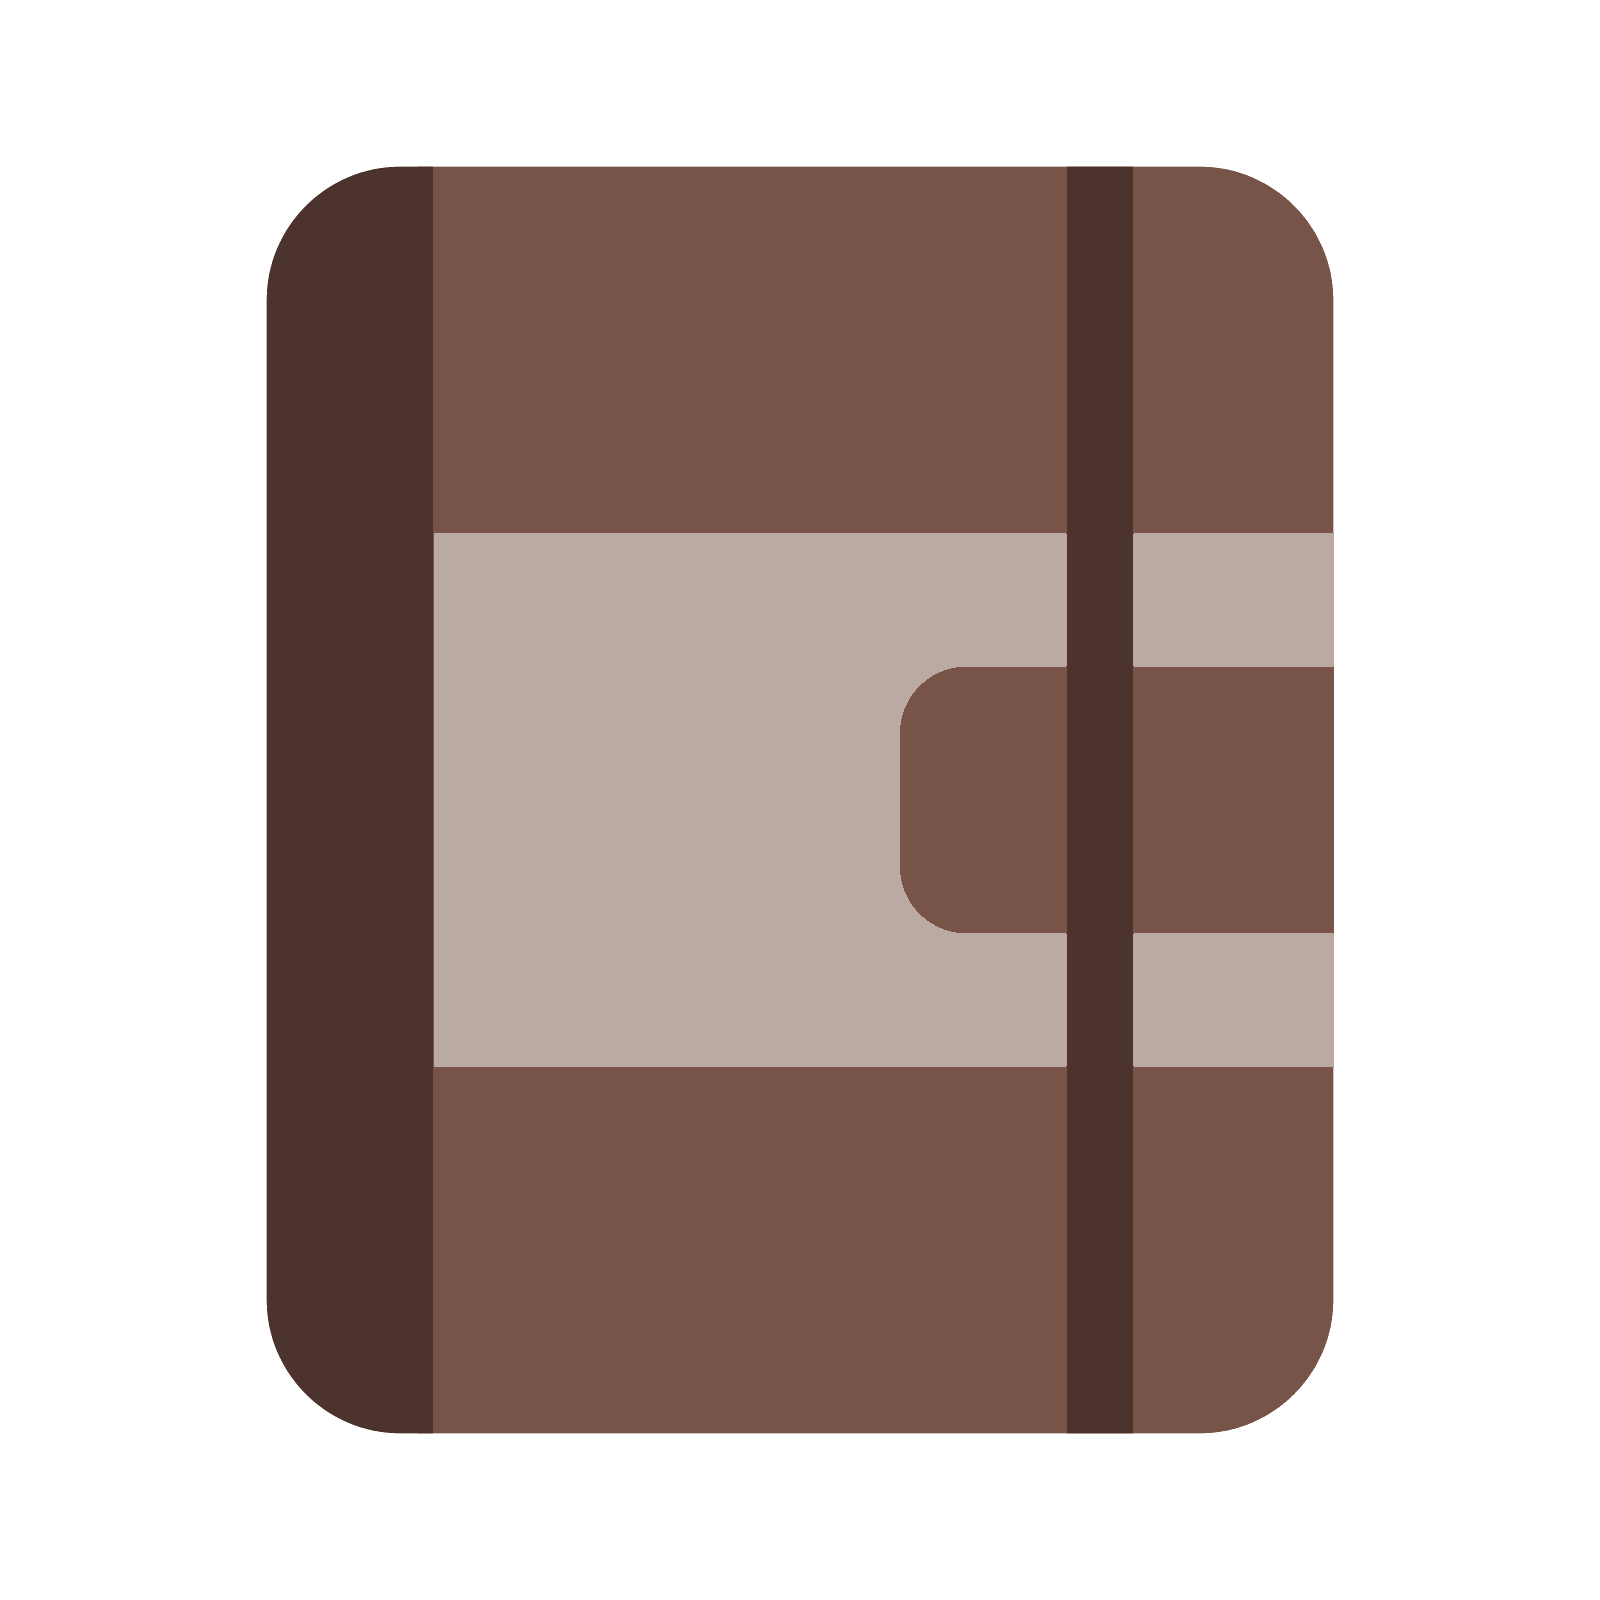 Journal icon png. Free download and vector